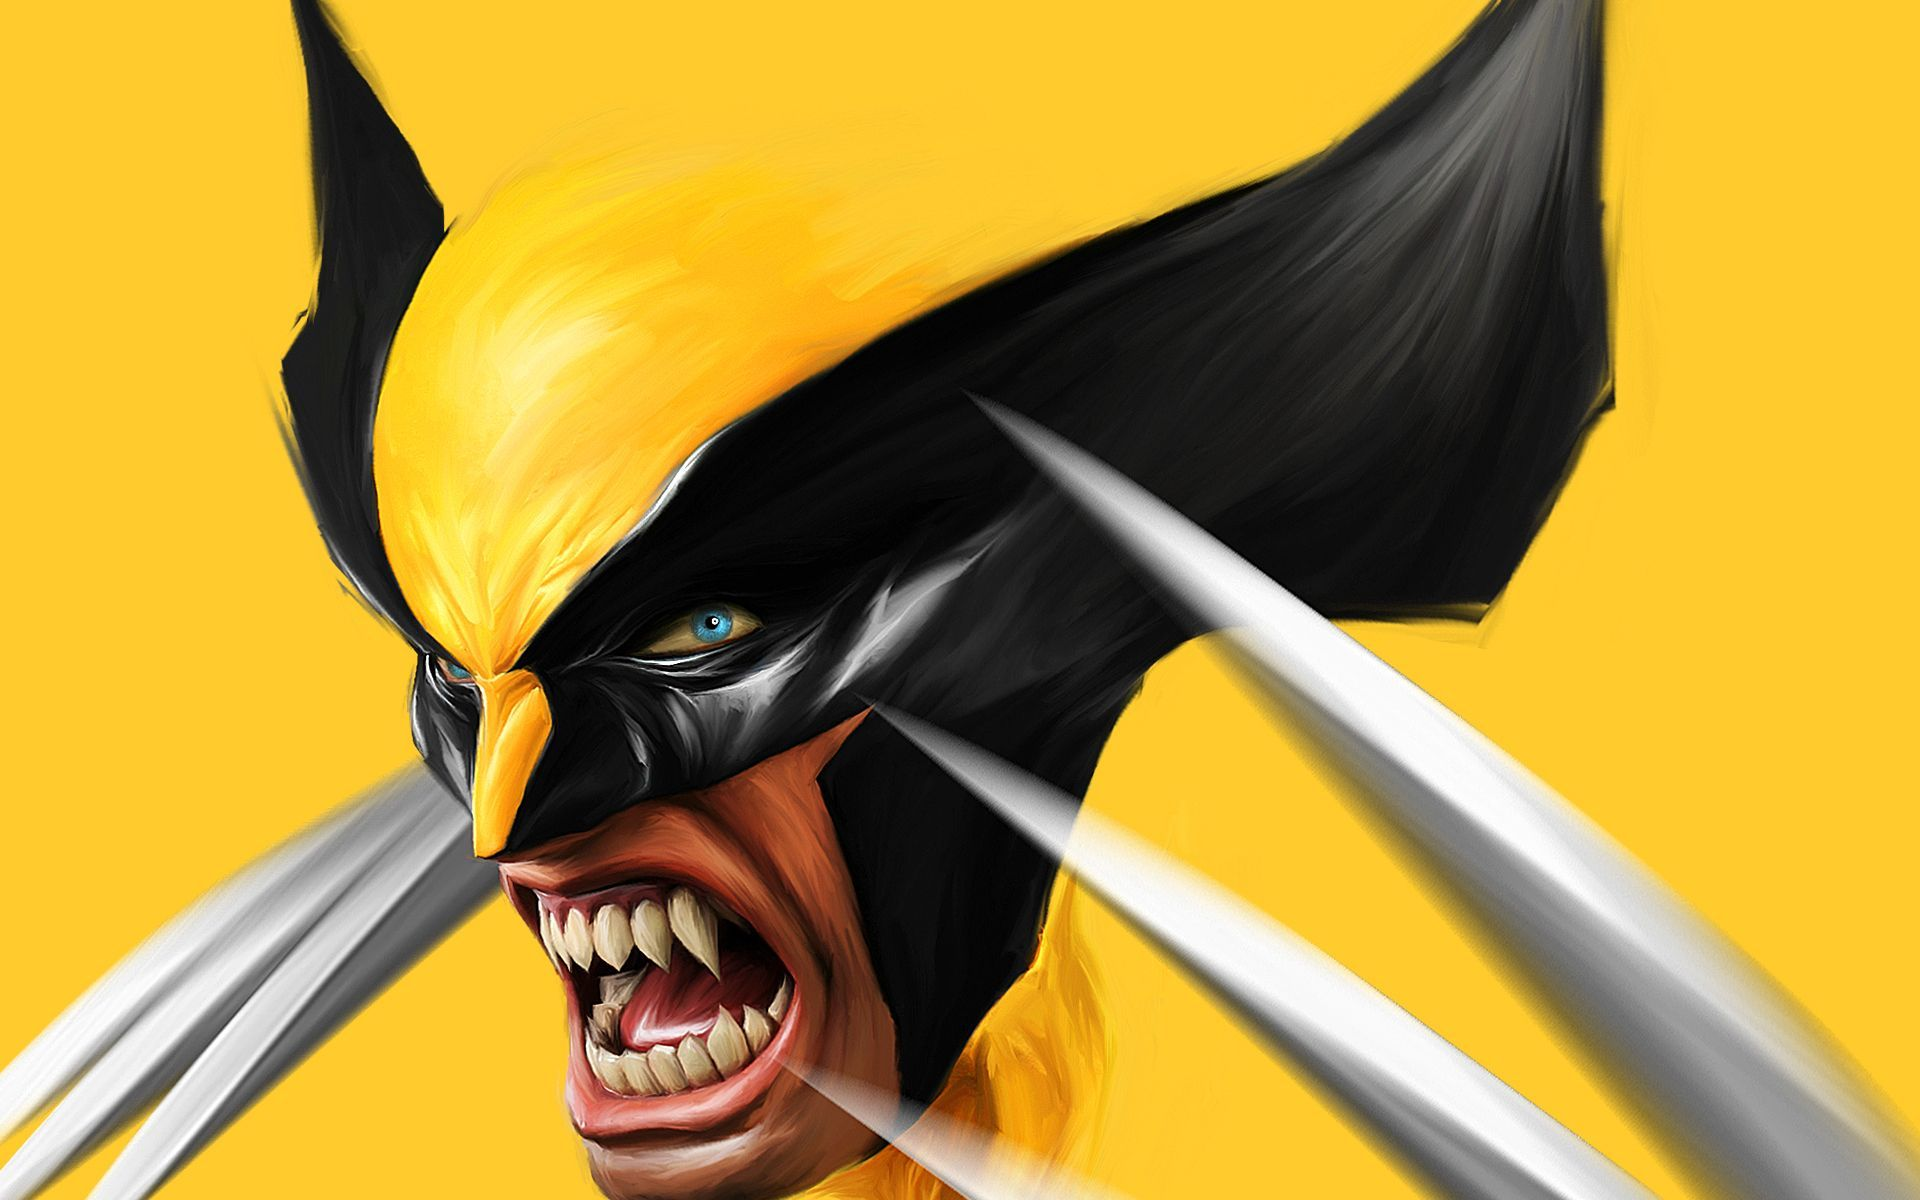 Beautiful Wallpaper High Resolution Wolverine - best-yellow-wallpapers_092847295  You Should Have_743579.jpg